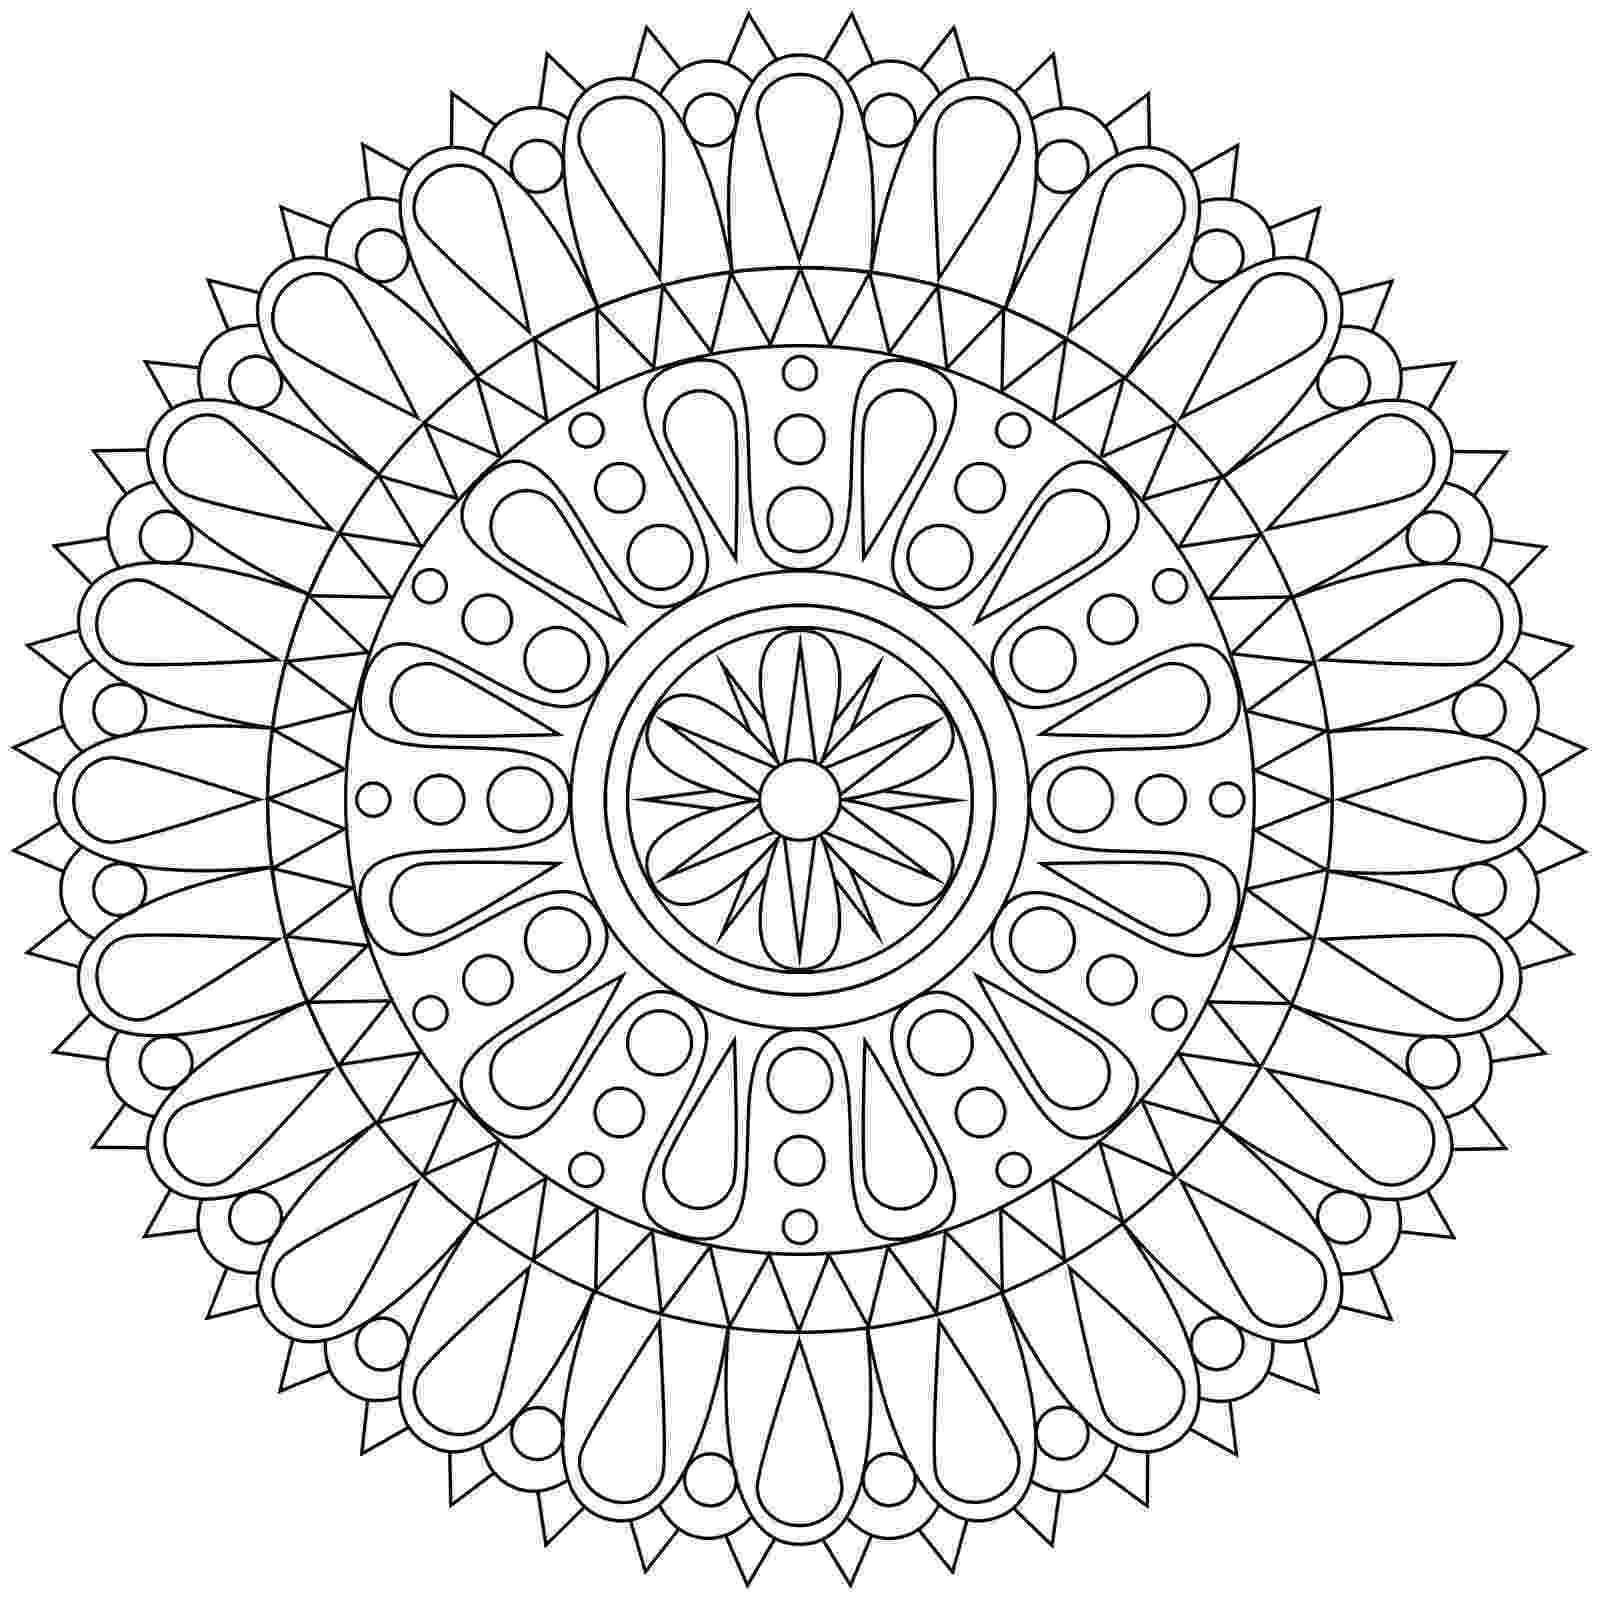 colouring patterns colouring designs thelinoprinter colouring patterns 1 1